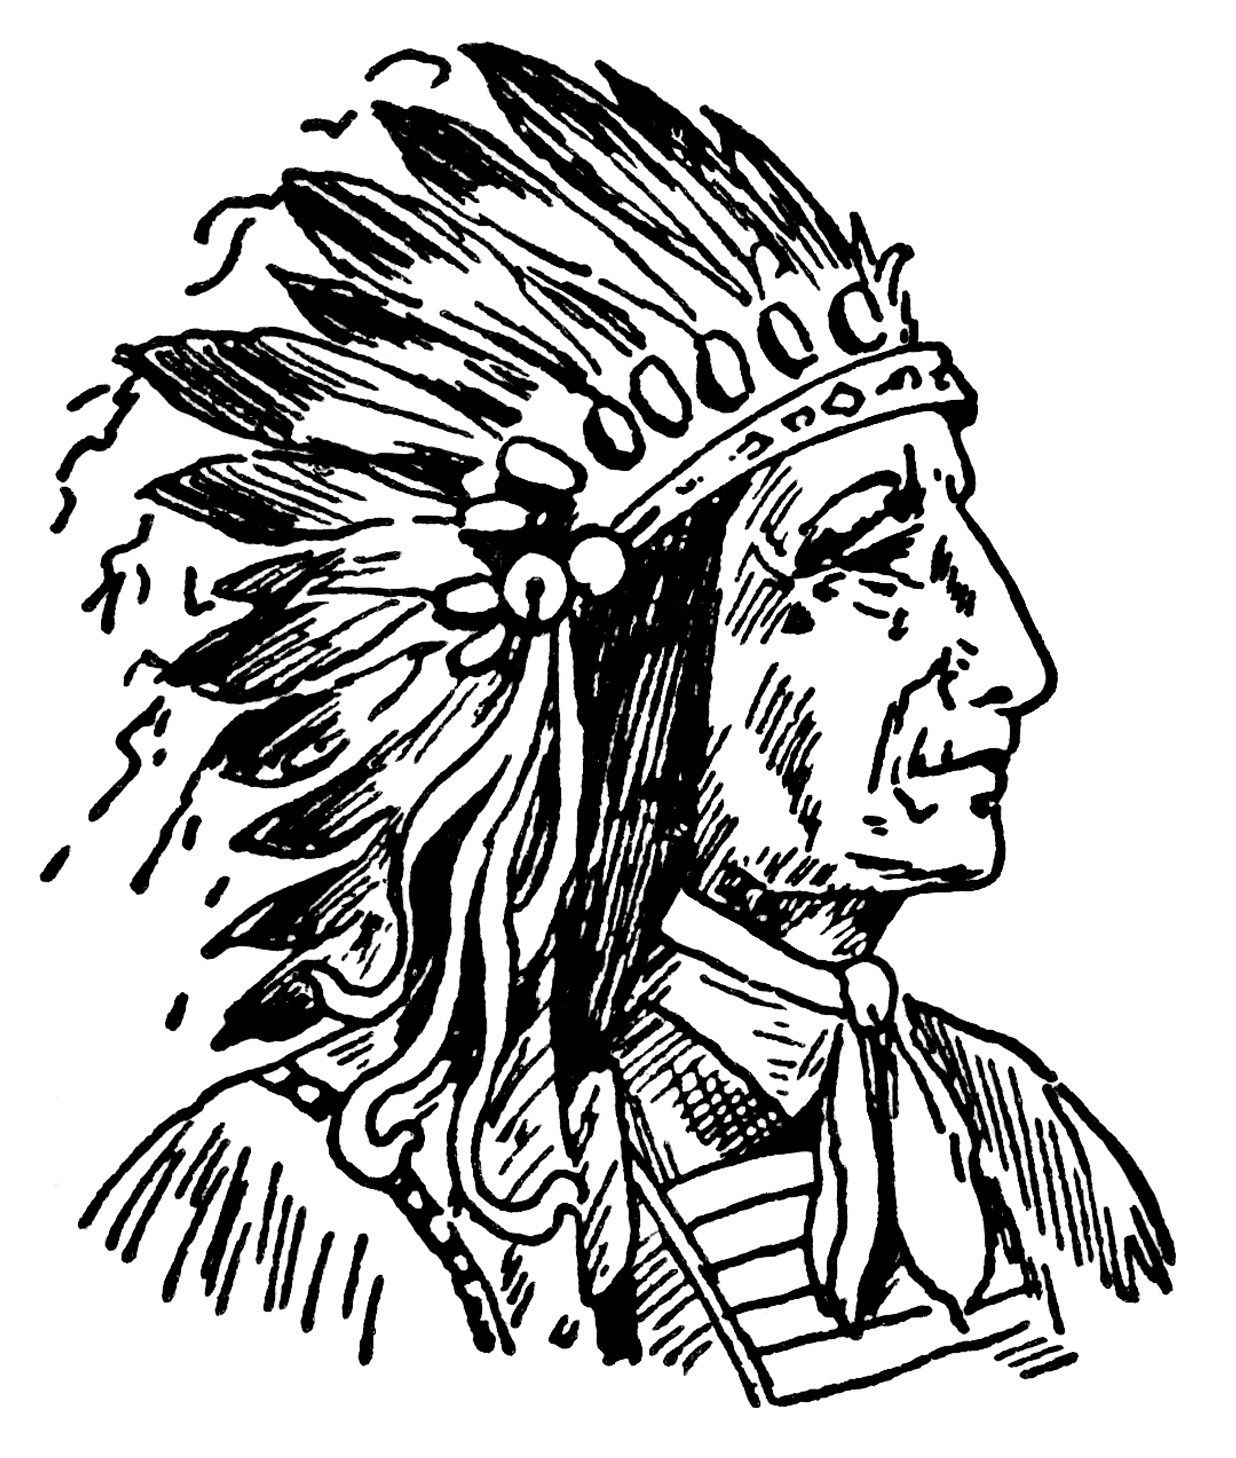 medium resolution of indian chief clip art vintage native american illustration black and white clipart warrior brave graphics indian art sketch